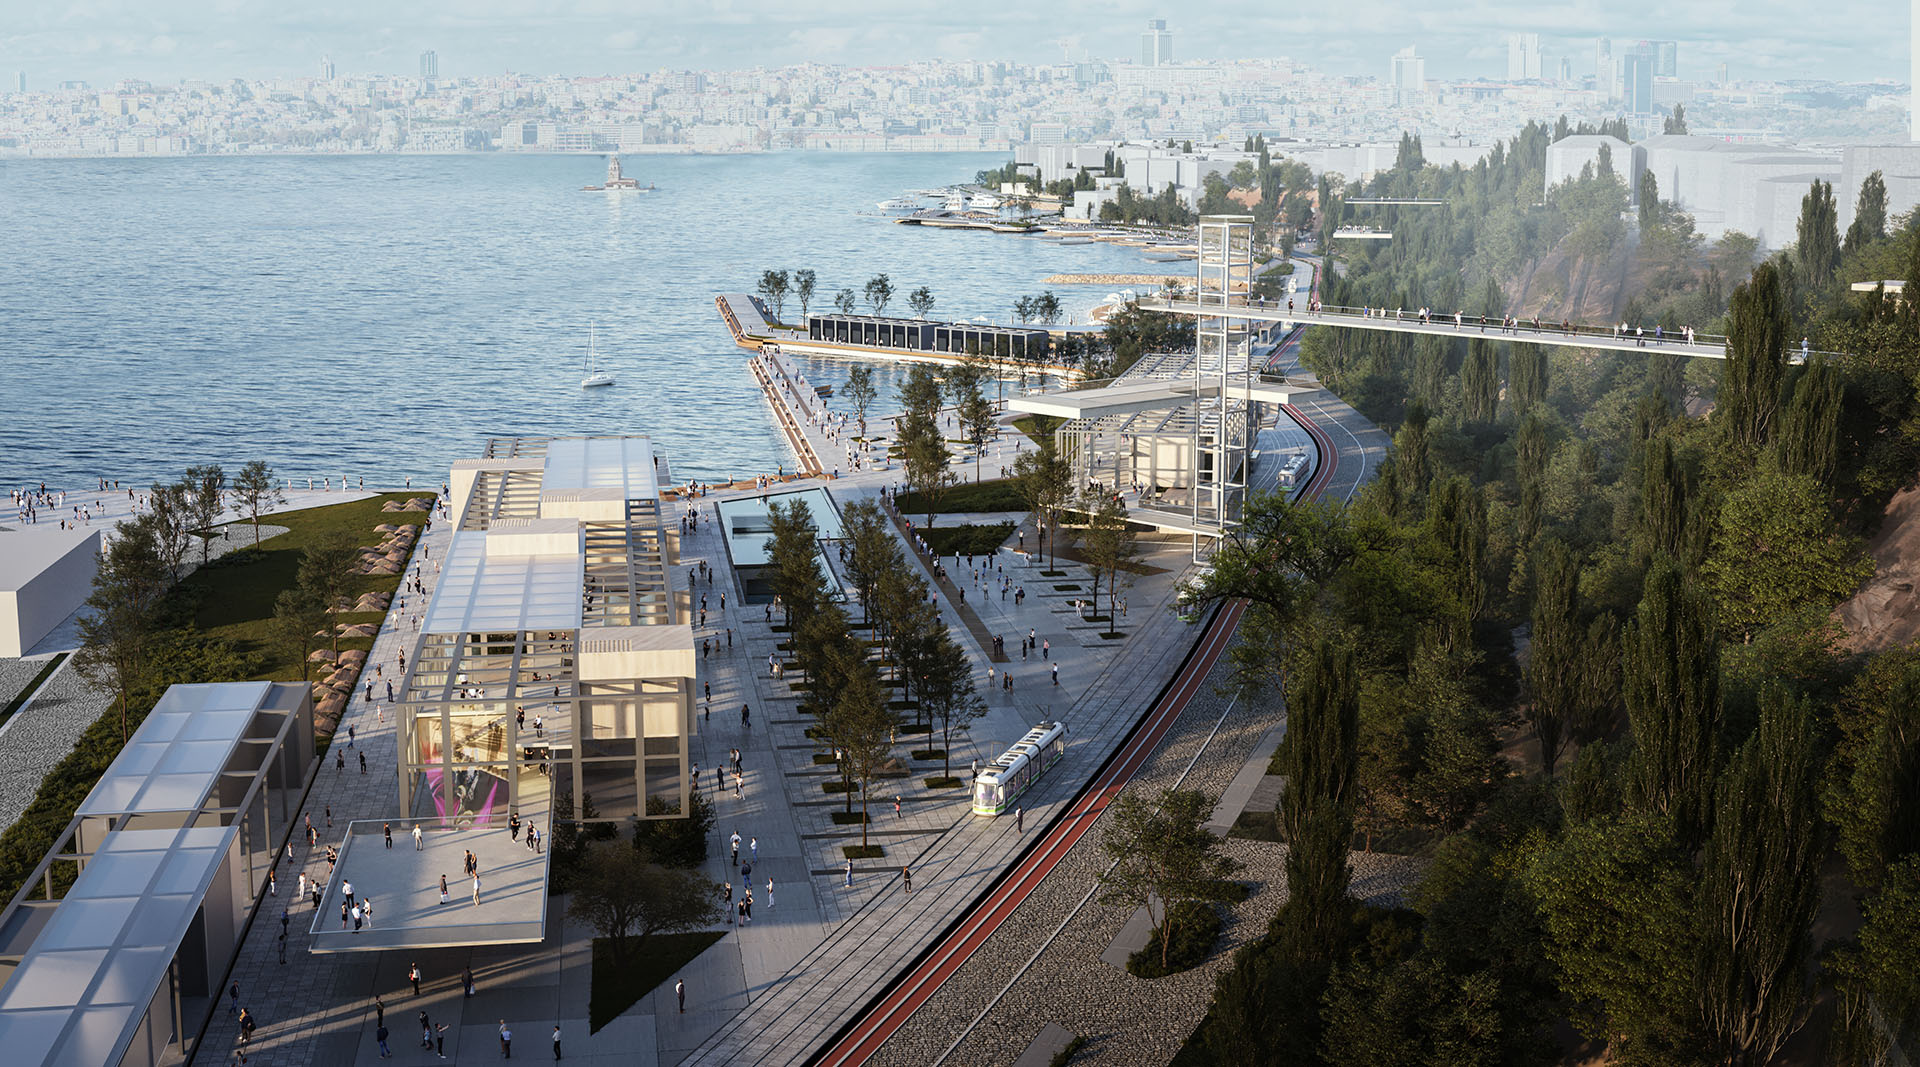 render_ivabox_Mdesign_istanbul_salacak_Competition_2